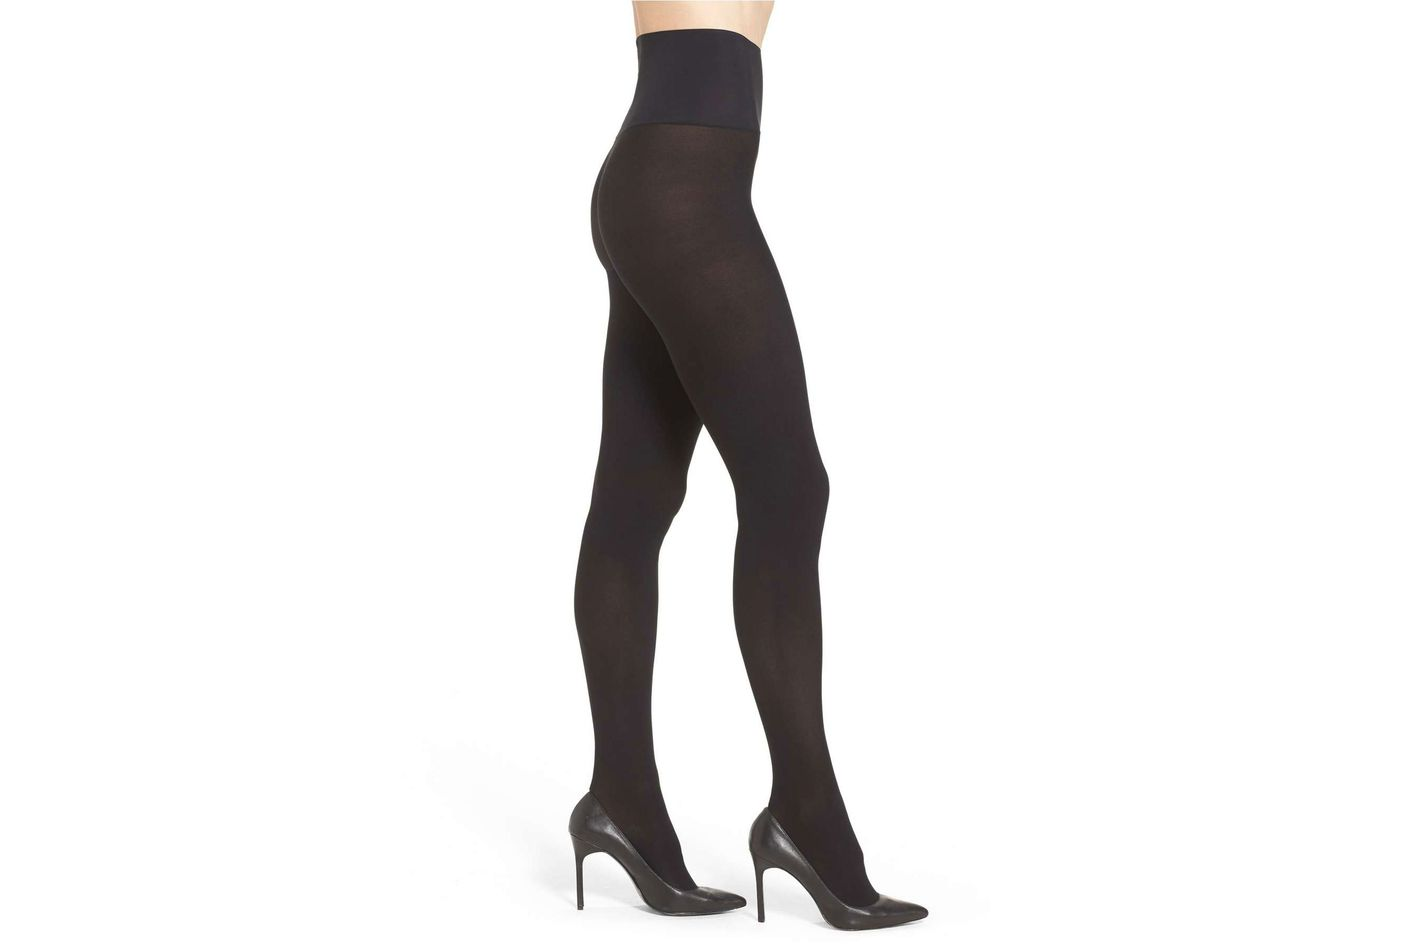 364bfd5e2 8 Best Black Tights Women 2017  Opaque